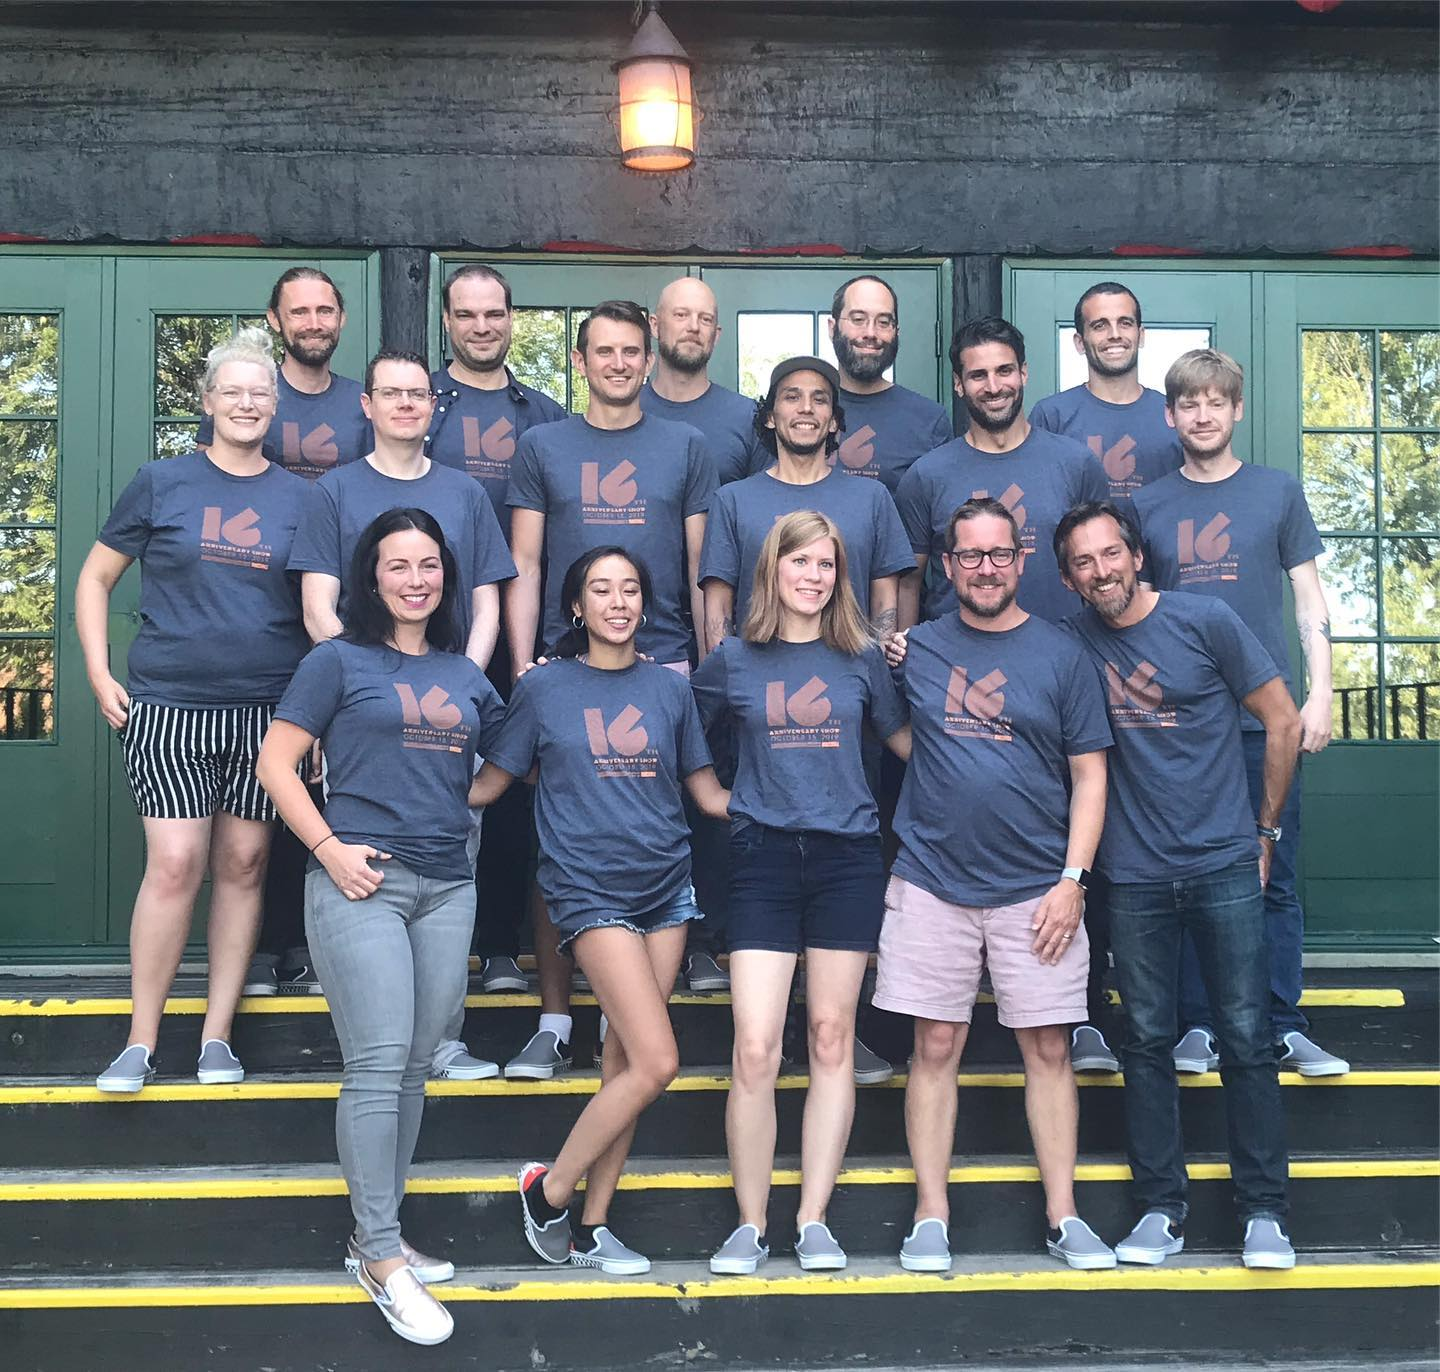 The Bandzoogle team poses for a group photo at one of their annual retreats.